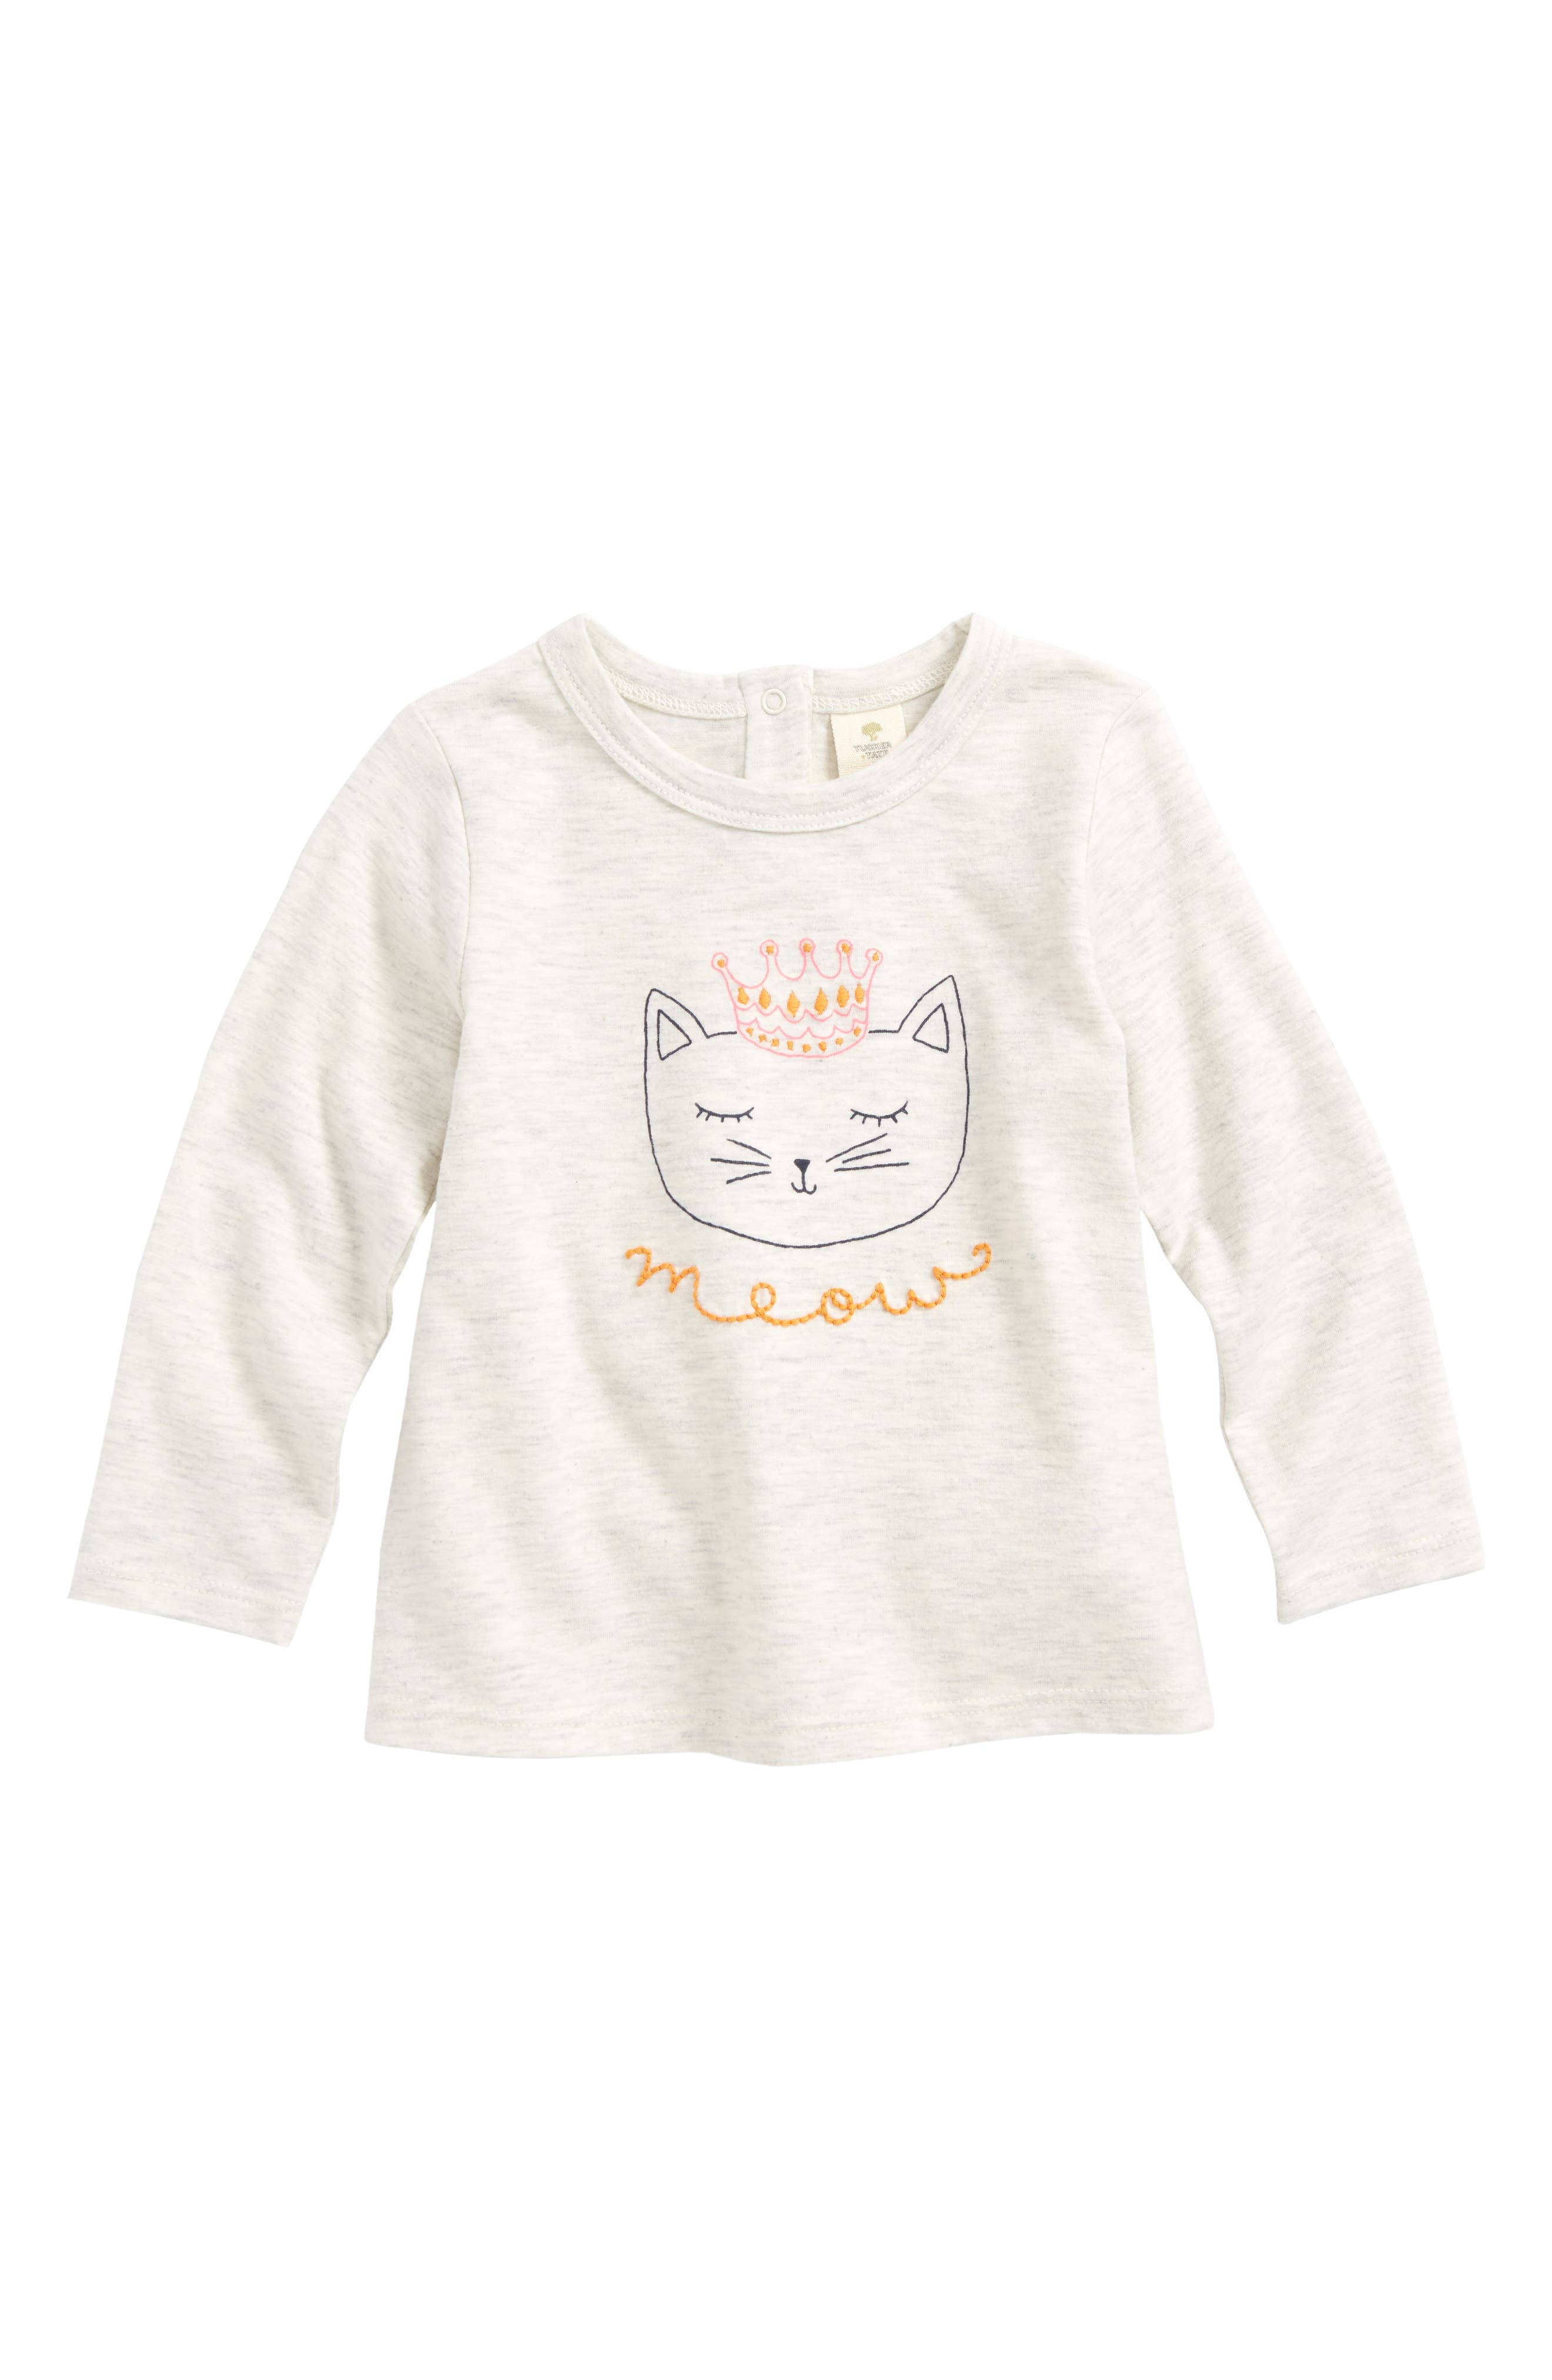 Embroidered Graphic Tee,                             Main thumbnail 1, color,                             900